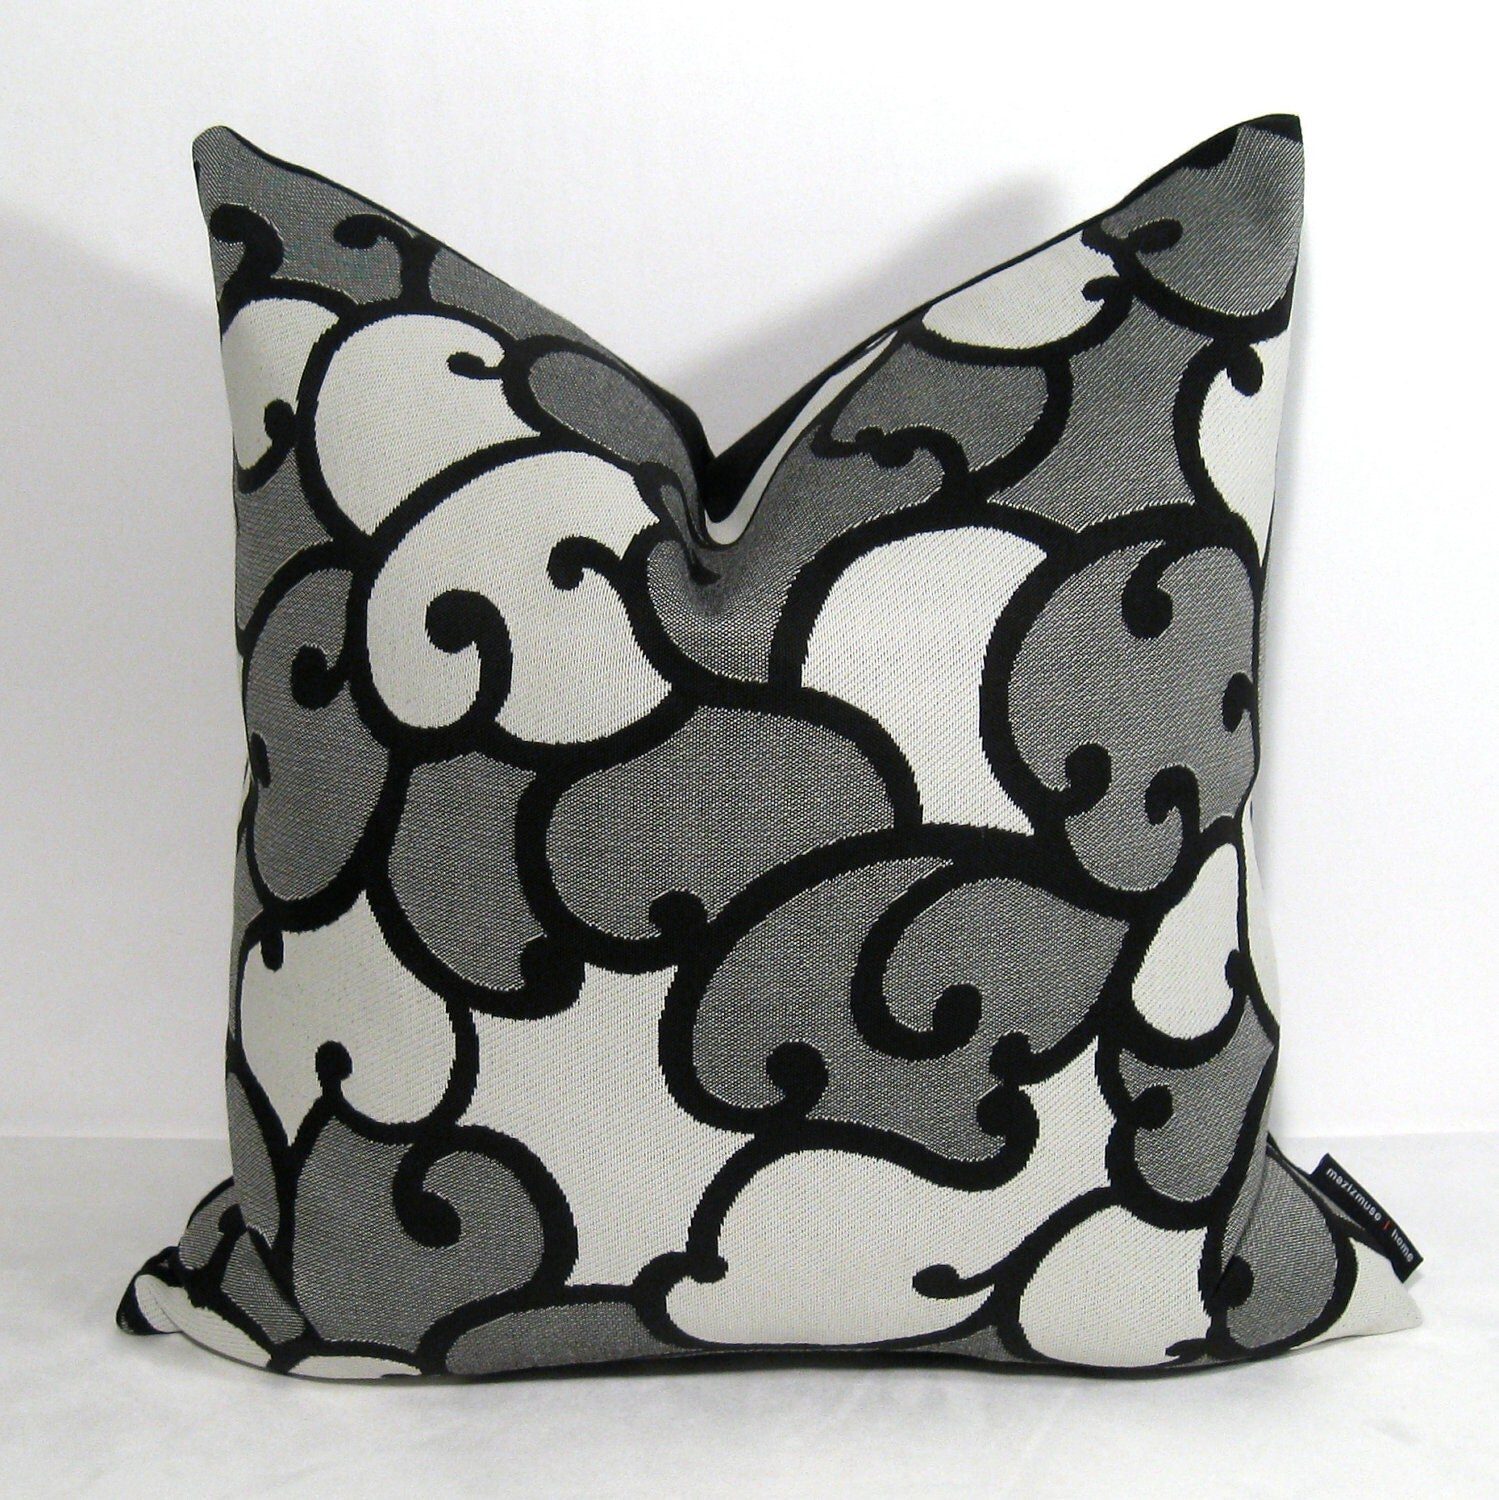 SALE Black White Gray Pillow Cover Outdoor Cushion